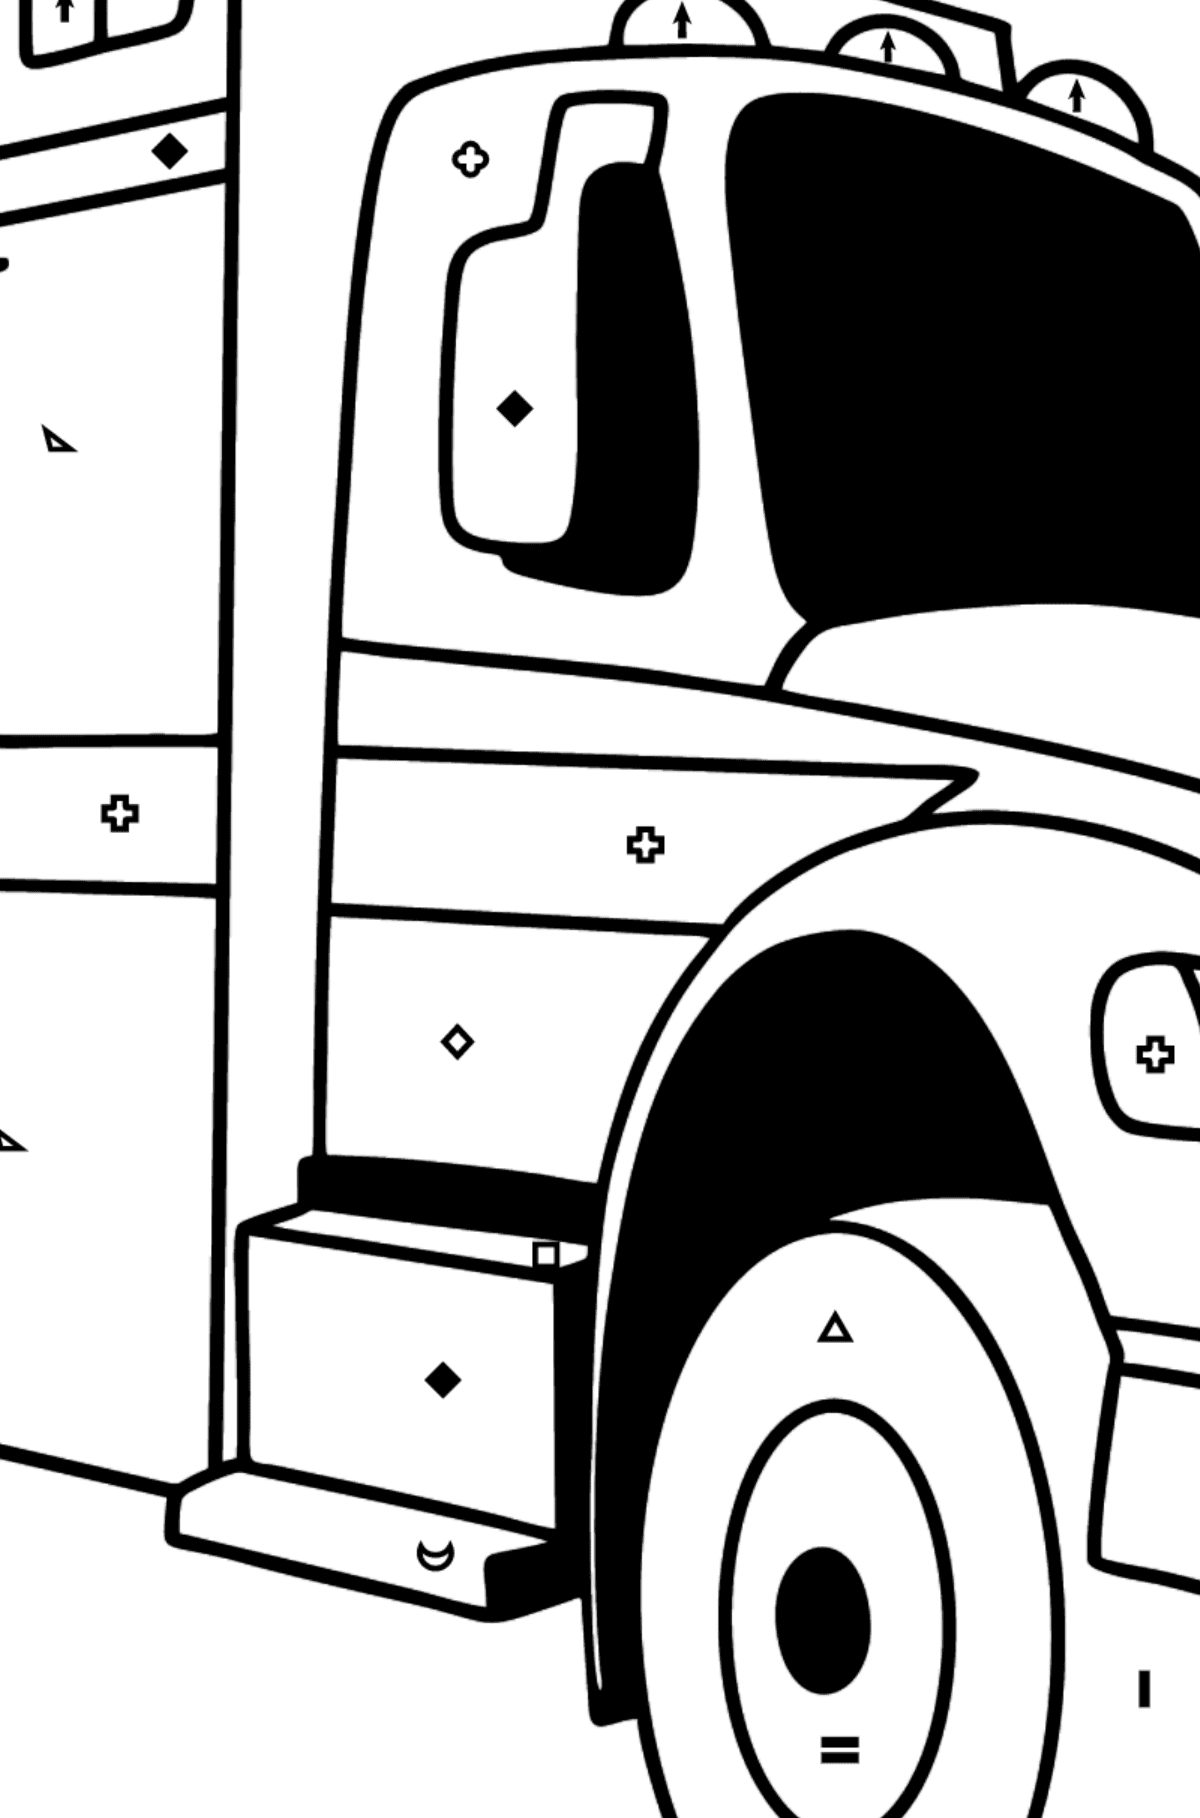 Fire Truck in Argentina coloring page - Coloring by Symbols and Geometric Shapes for Kids